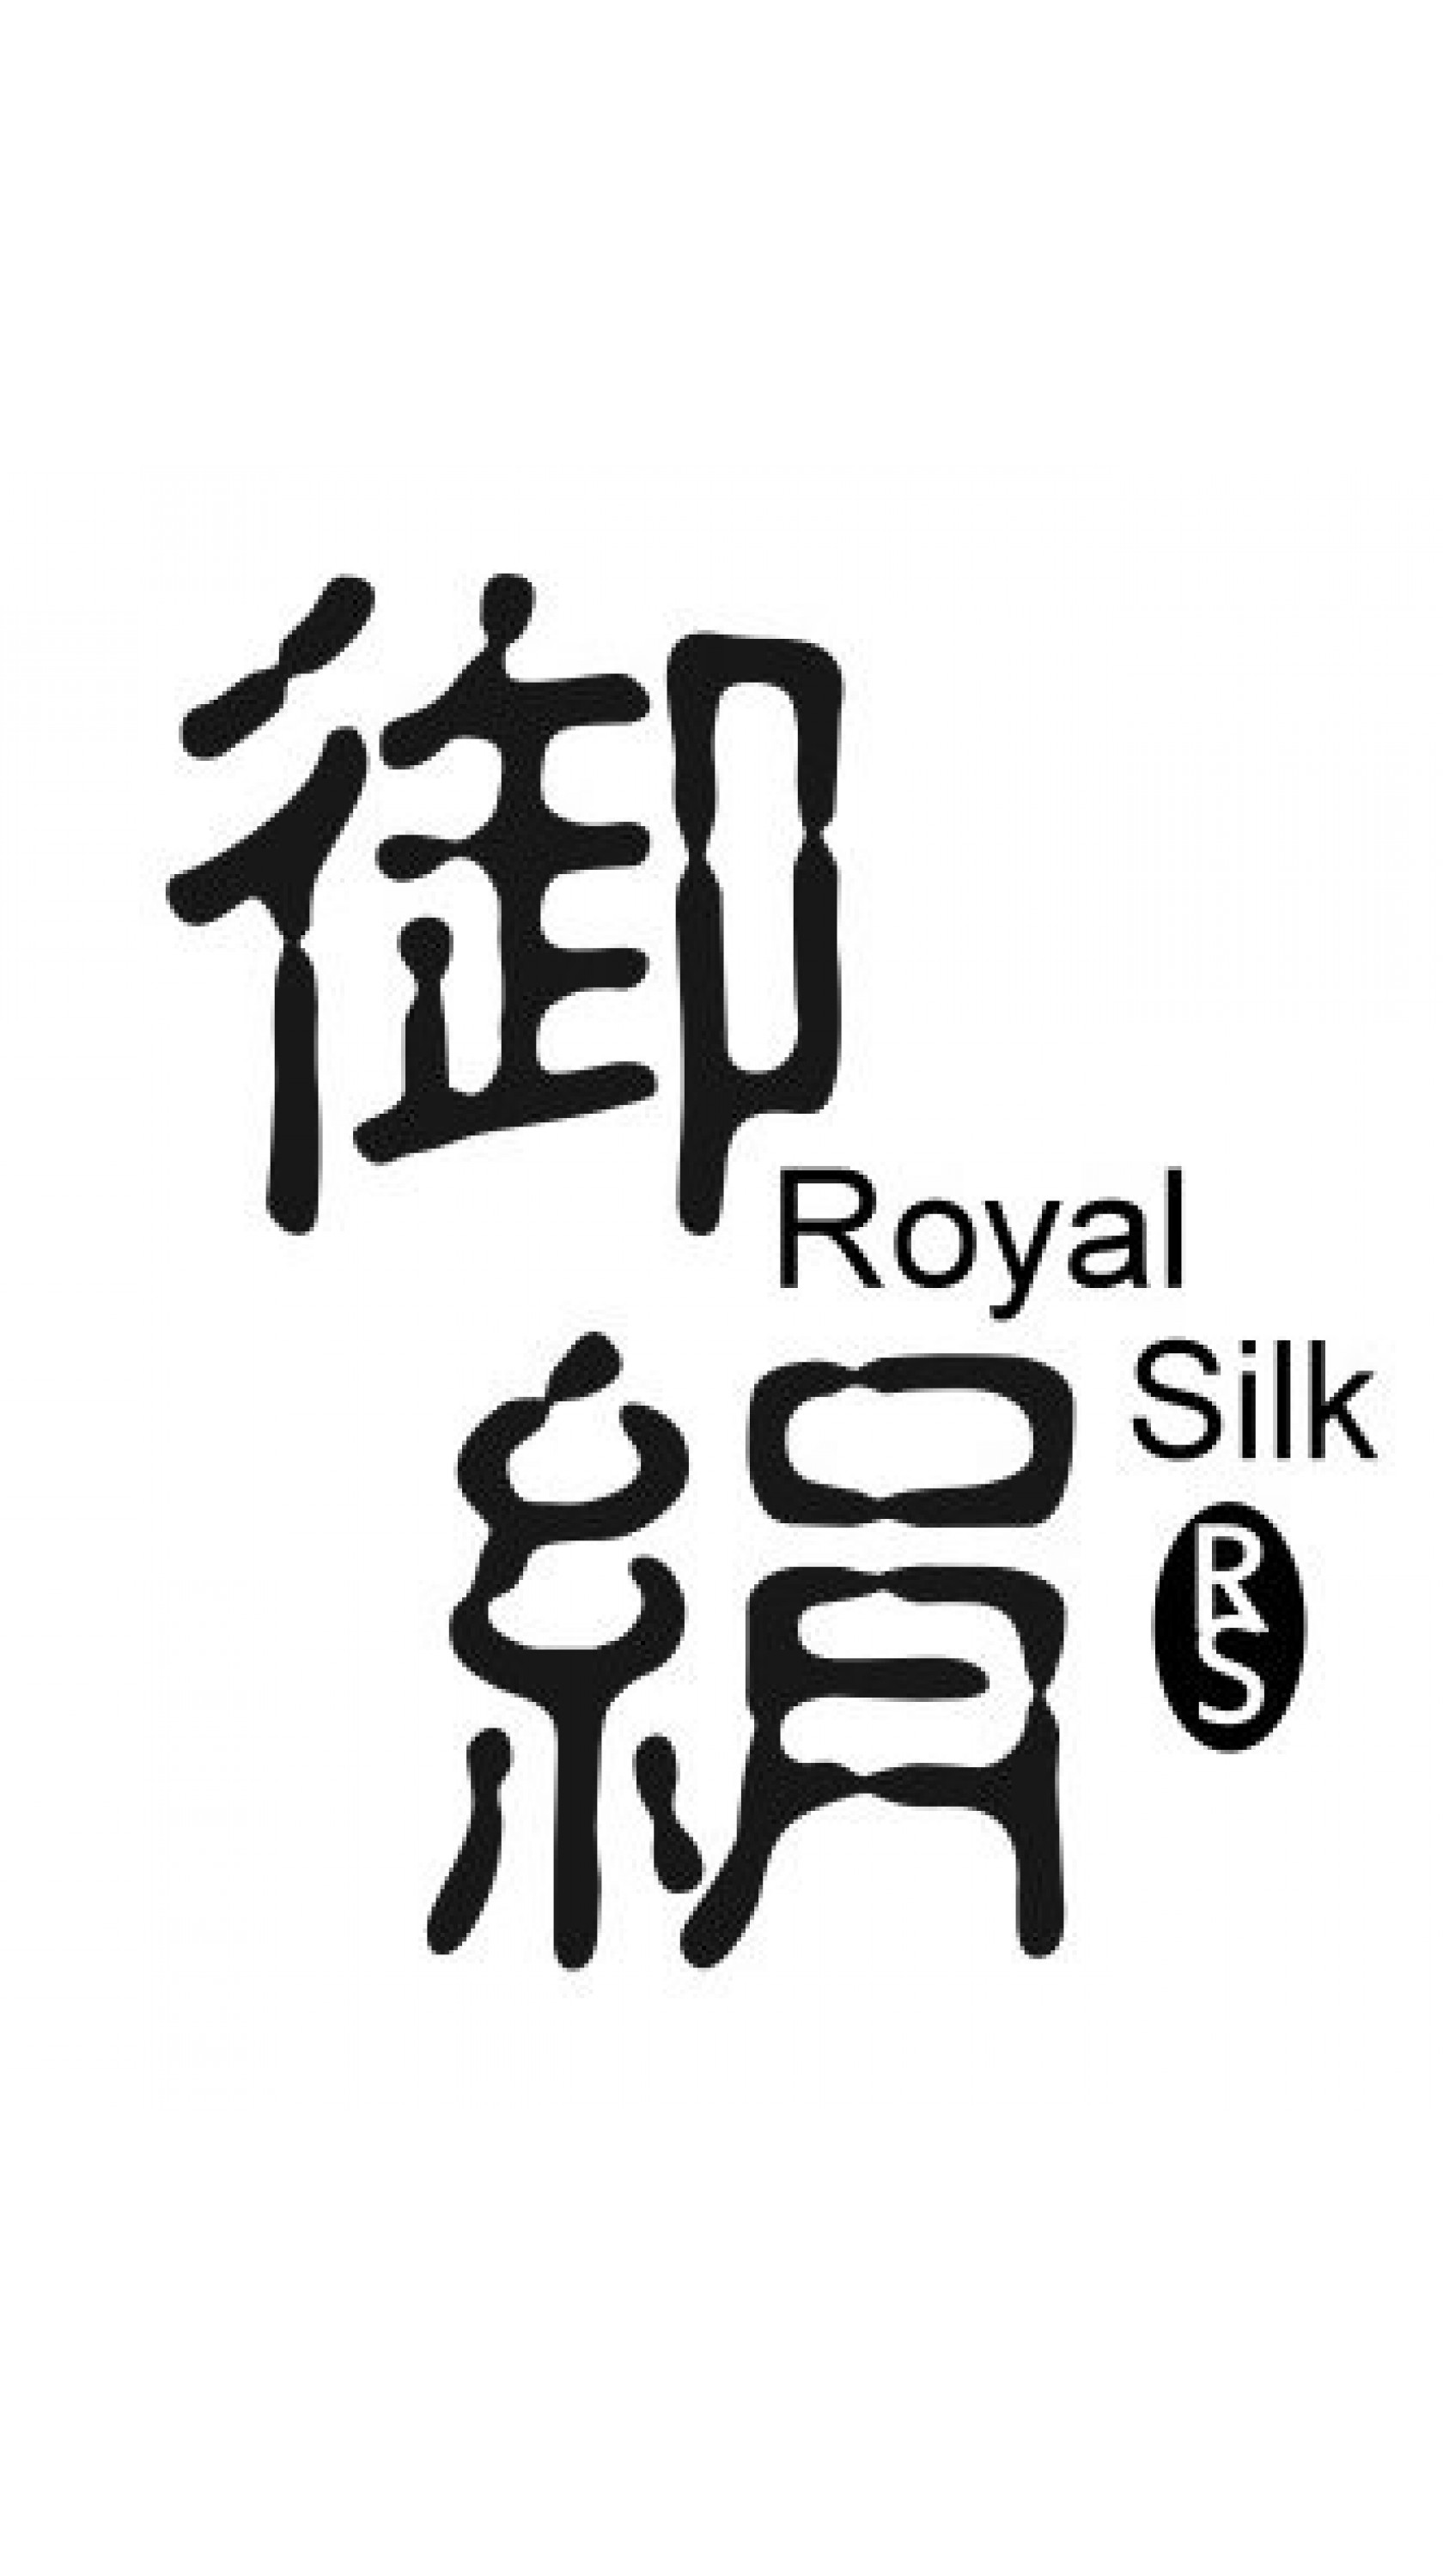 【Royal Silk】